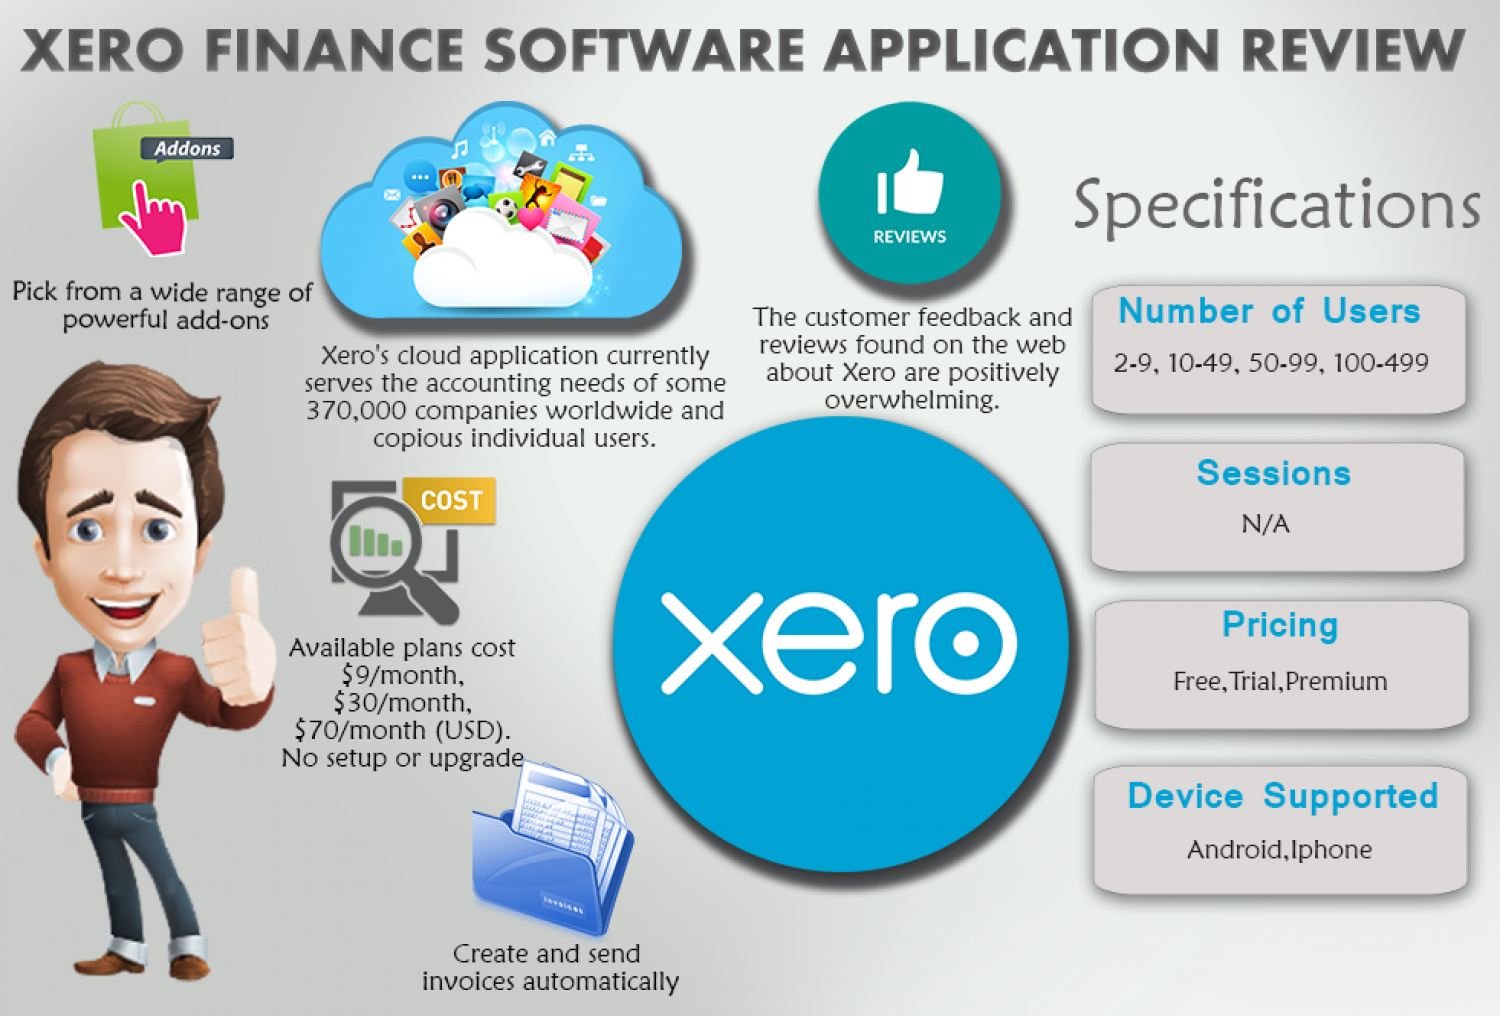 XERO Finance Software Application Review Infographic Infographic